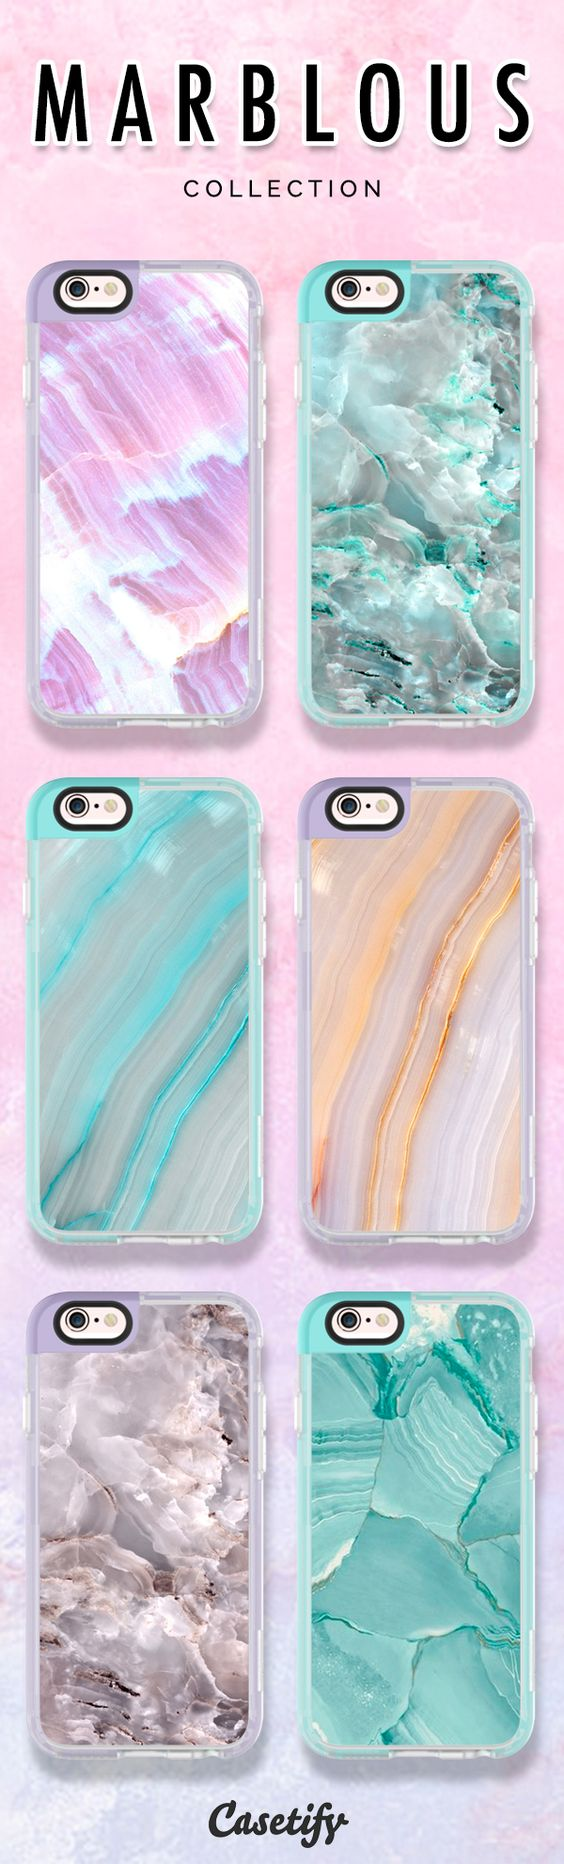 Check out our new Marblous collection! https://www.casetify.com/marblous/all | @casetify: